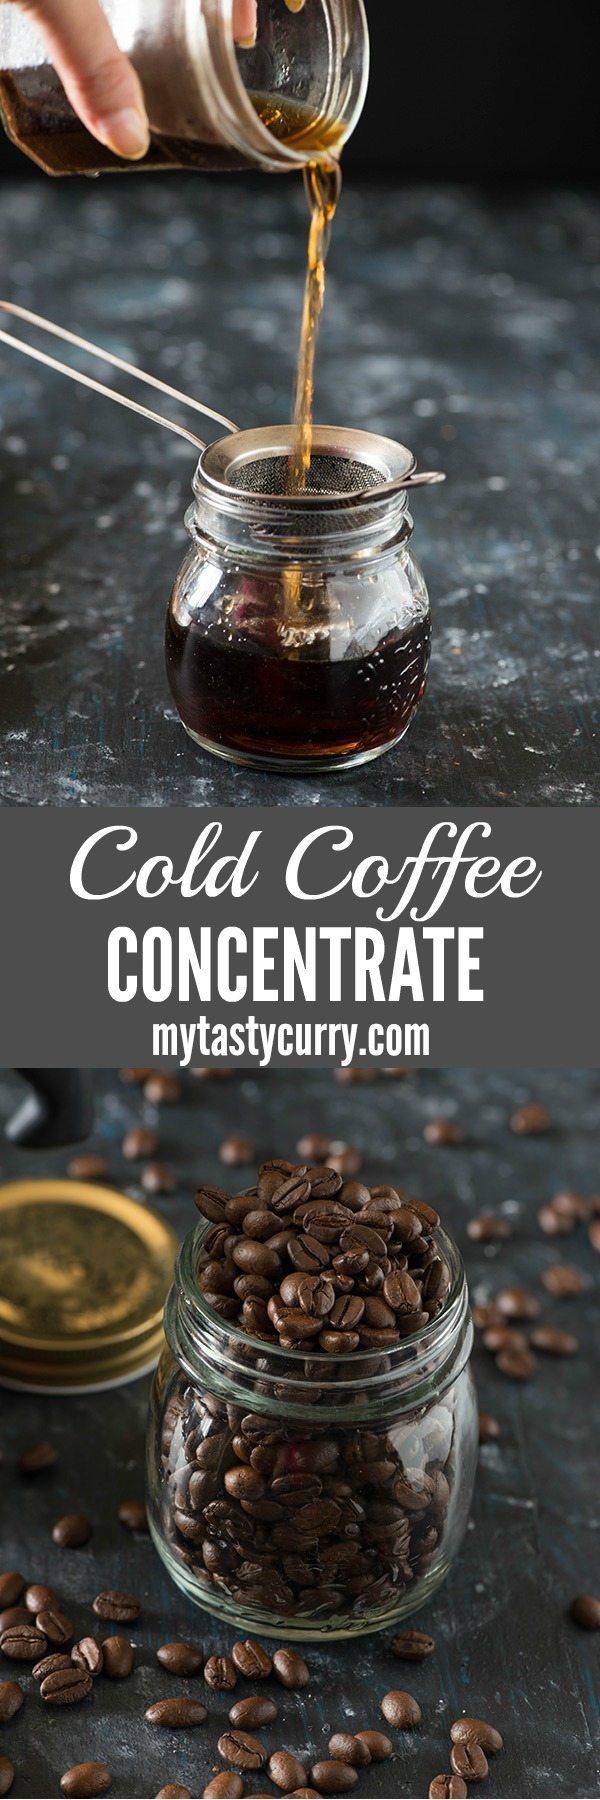 Cold brew coffee concentrate is perfect for you If you love cold coffee in the summer, but hate that excessive bitter coffee or watery cold coffee or scared of acid reflux after having one or two coffees in a day. Cold brewing the coffee gives you a perfectly smooth cup of iced coffee every time.